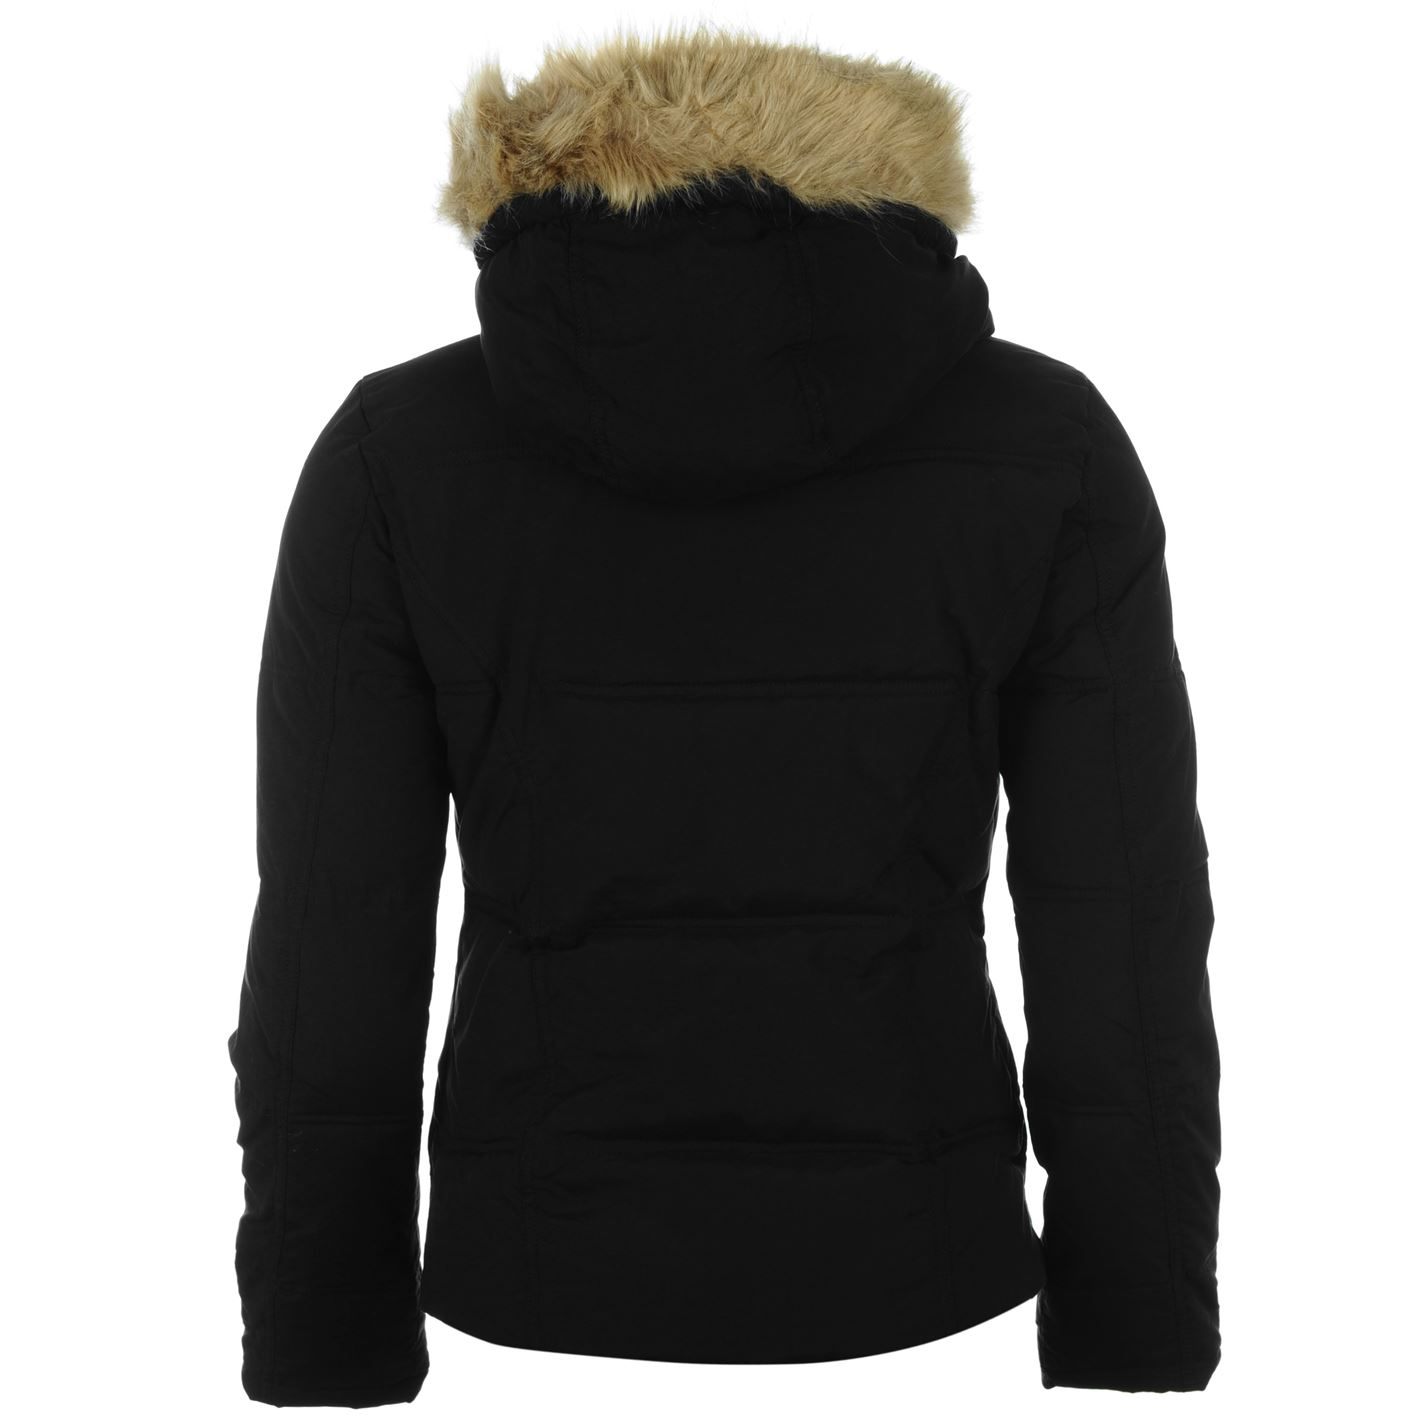 Roxy UW Jacket Ladies Black